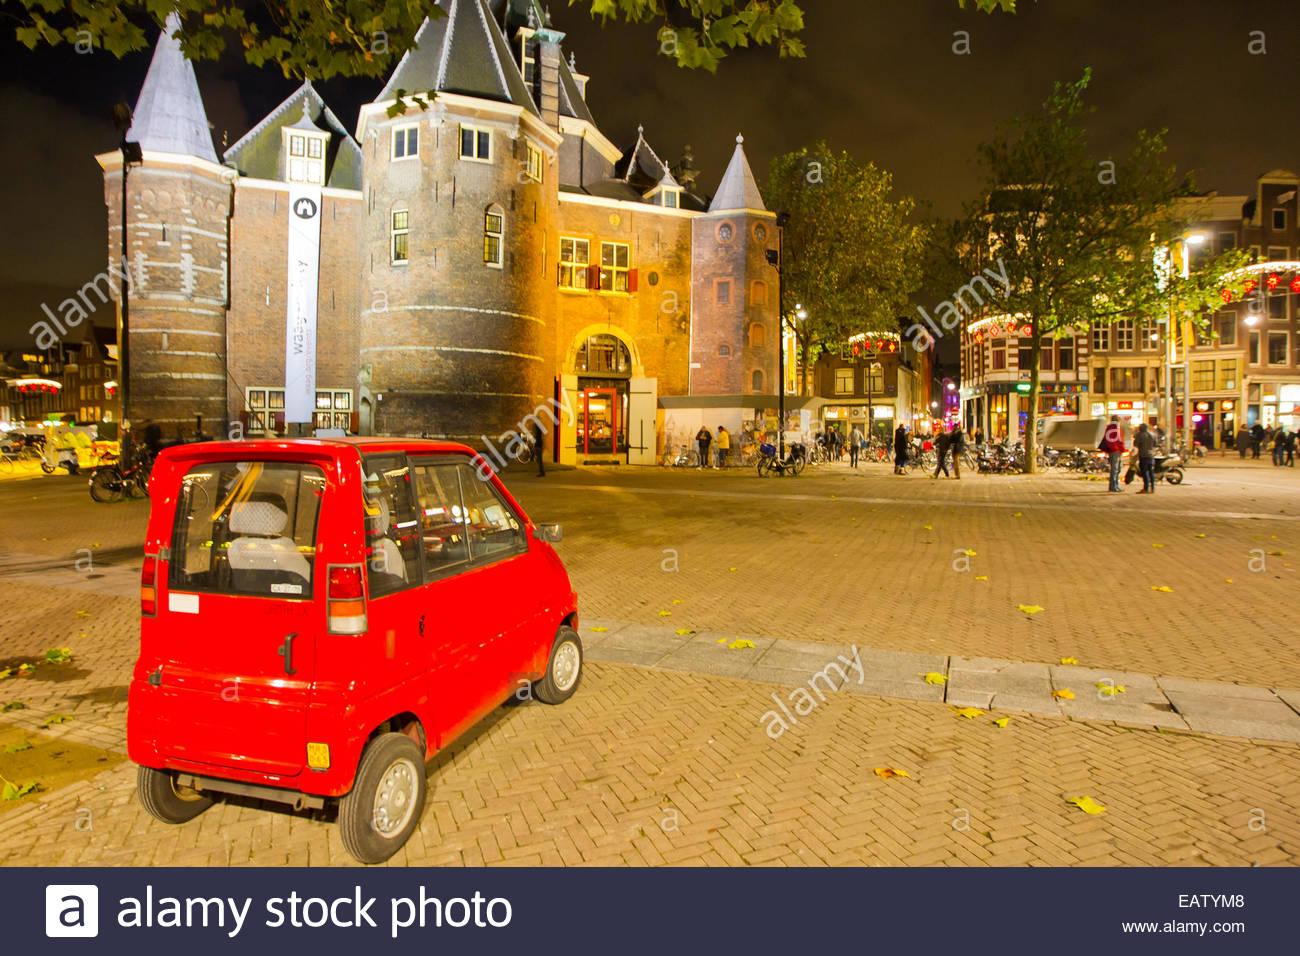 A little red Smart Car parked in front of a castle. - Stock Image